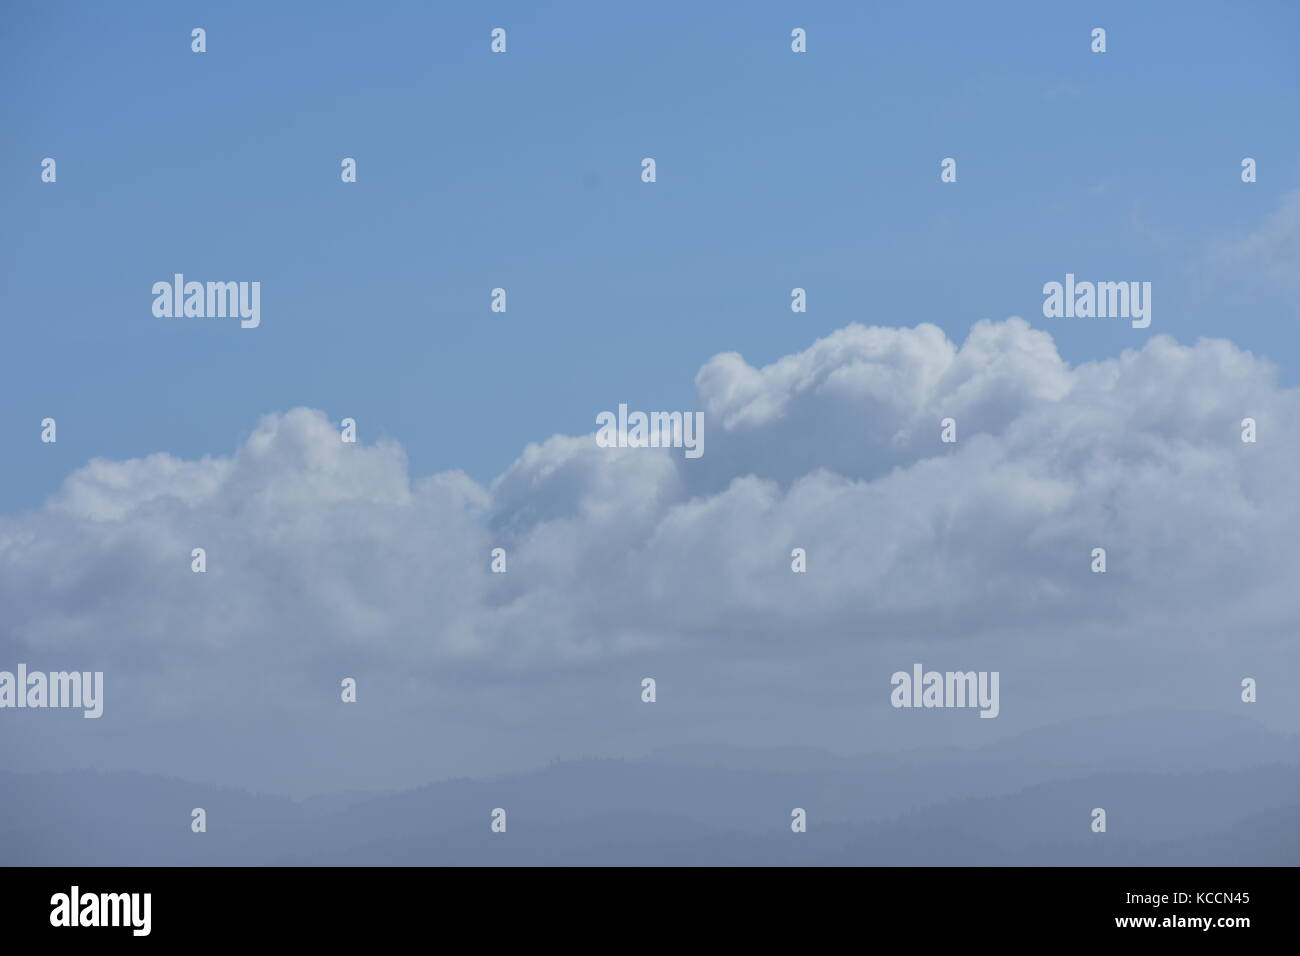 Fluffy Clouds - Stock Image